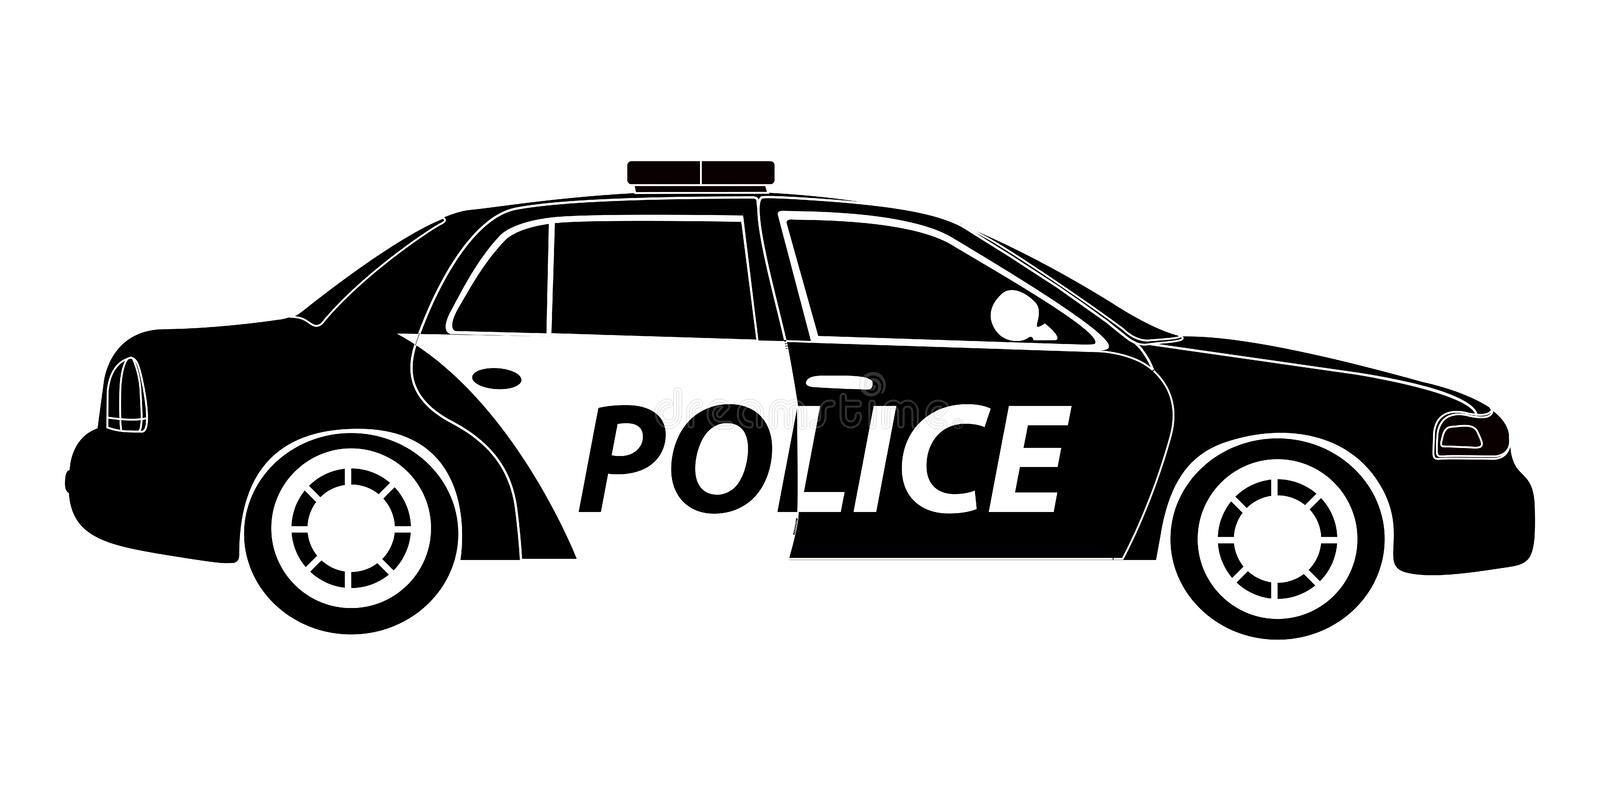 Isolated Police Car Silhouette Stock Vector - Illustration of modern, generated: 93510379